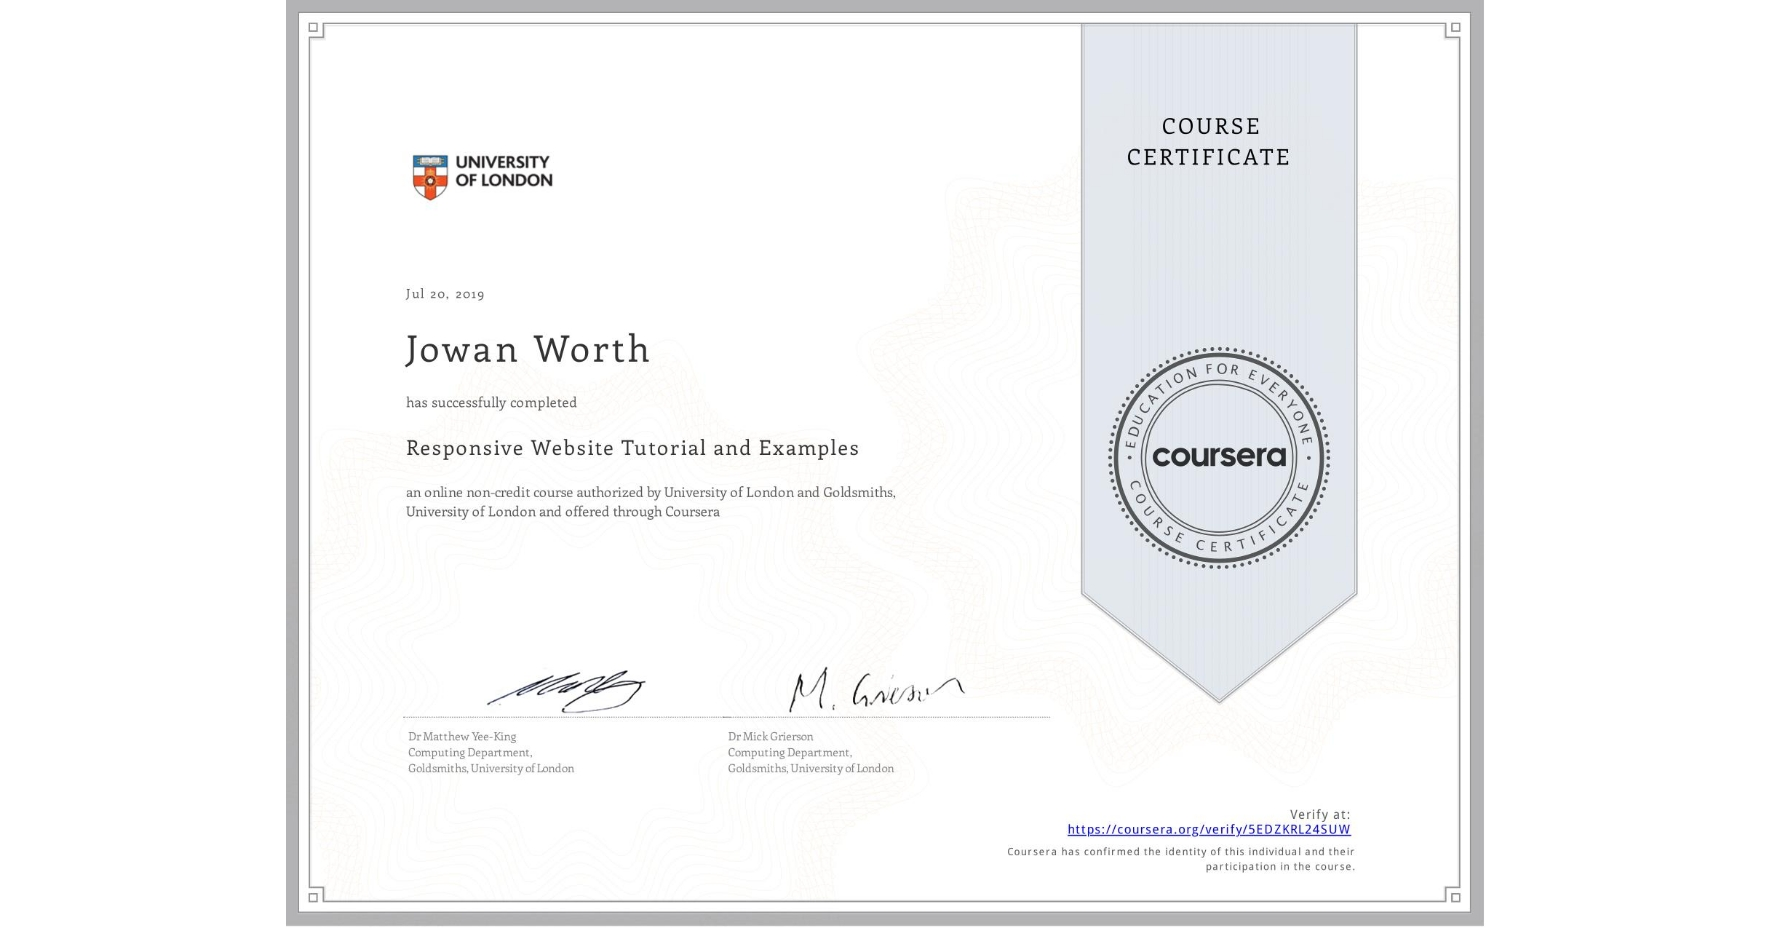 View certificate for Jowan Worth, Responsive Website Tutorial and Examples, an online non-credit course authorized by University of London & Goldsmiths, University of London and offered through Coursera